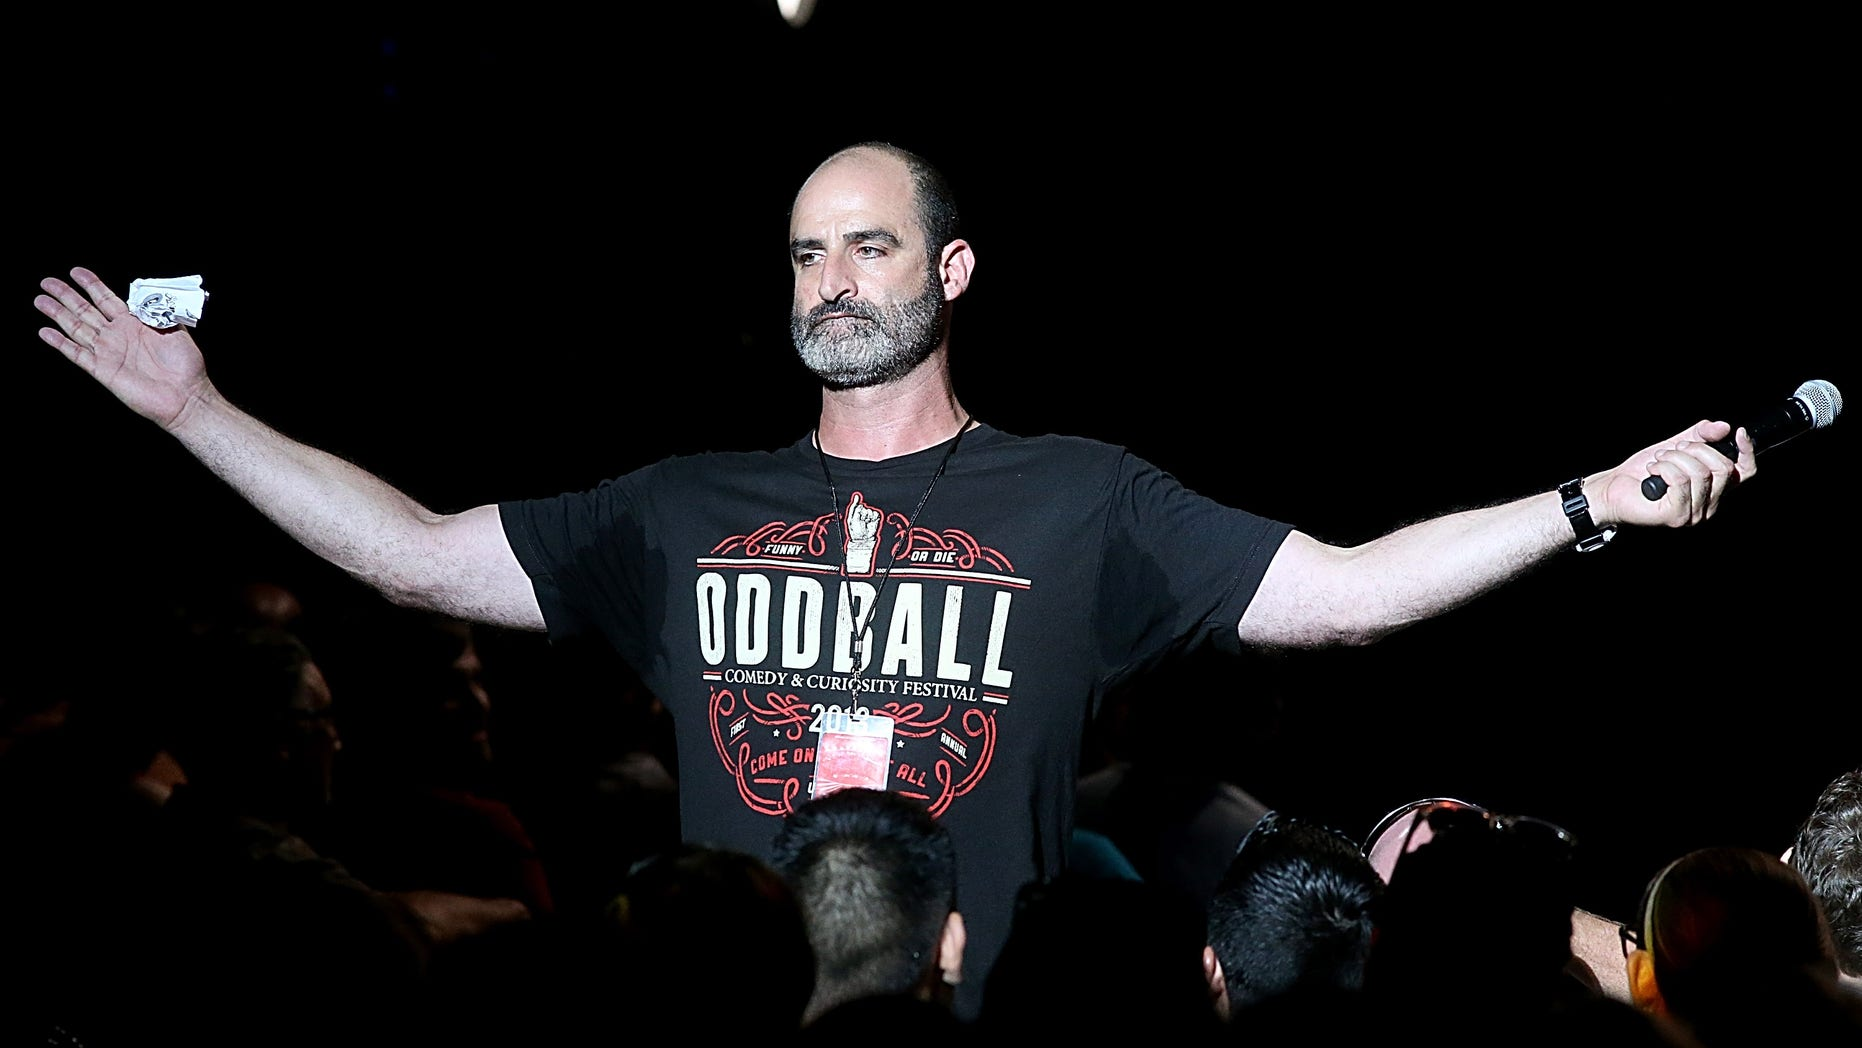 Brody Stevens performs during the Funny Or Die Oddball Comedy Festival at the Austin360 Amphitheater on Sept. 21, 2014 in Austin, Texas.